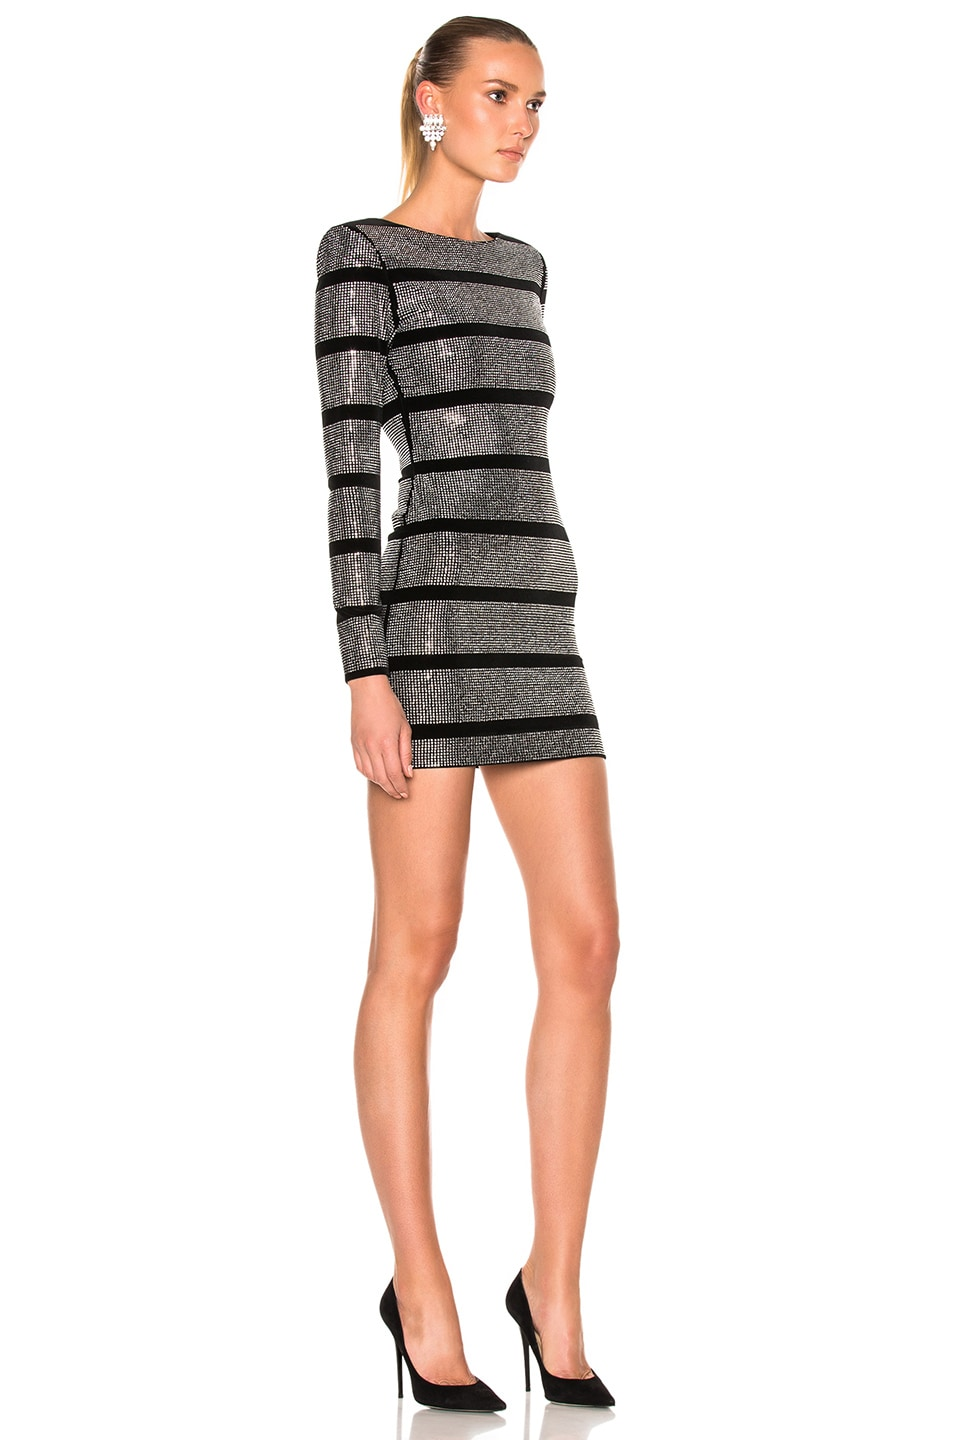 41f20eddf18 Image 3 of BALMAIN Velvet Embellished Mini Dress in Black   Silver